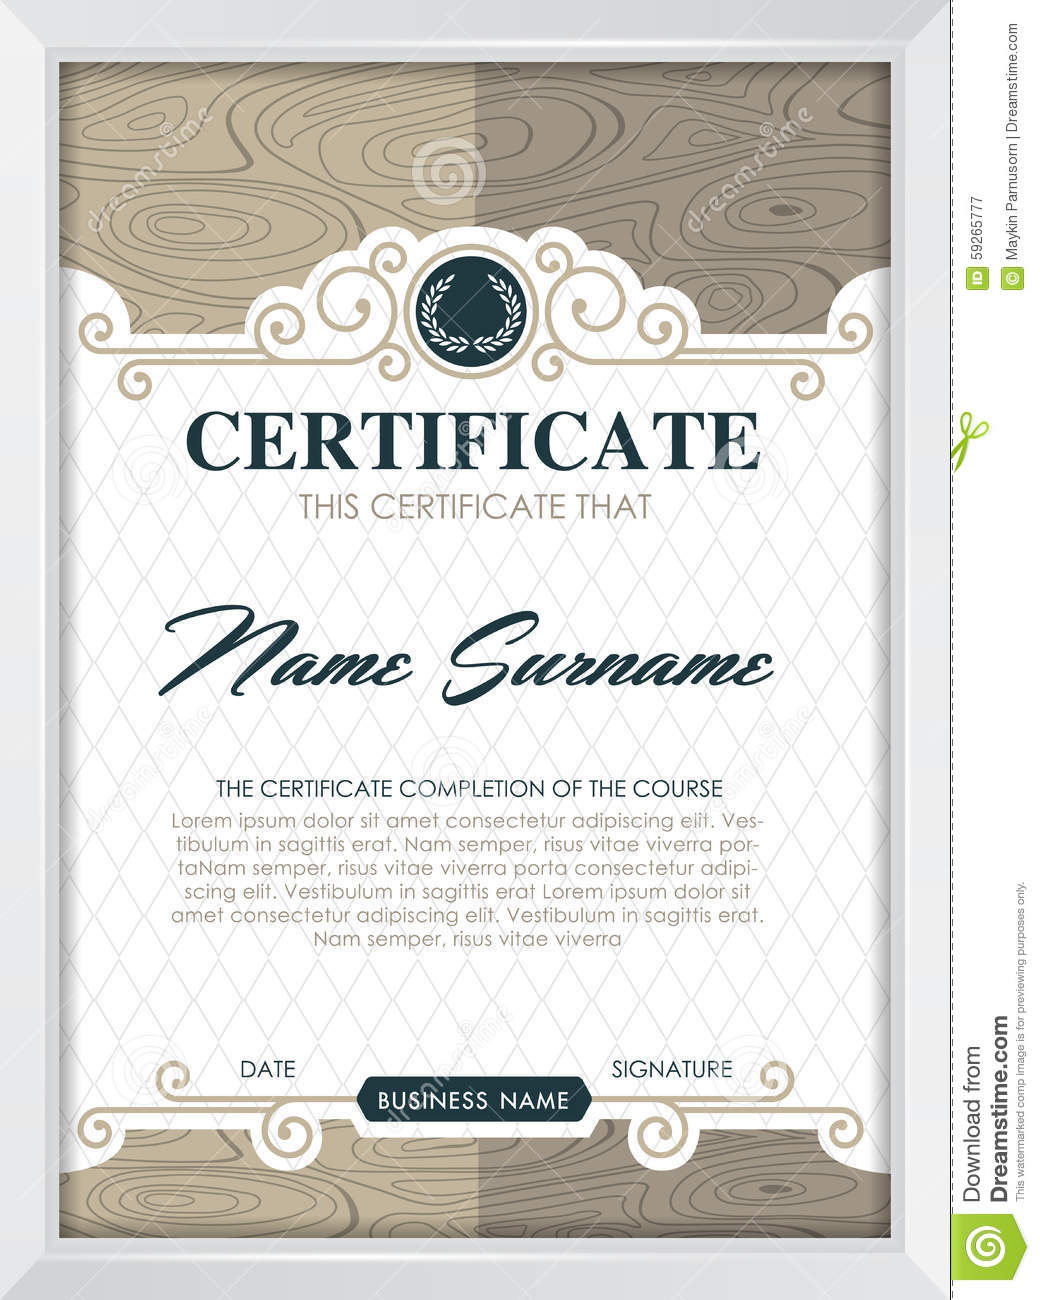 Qualification Certificate Template 2